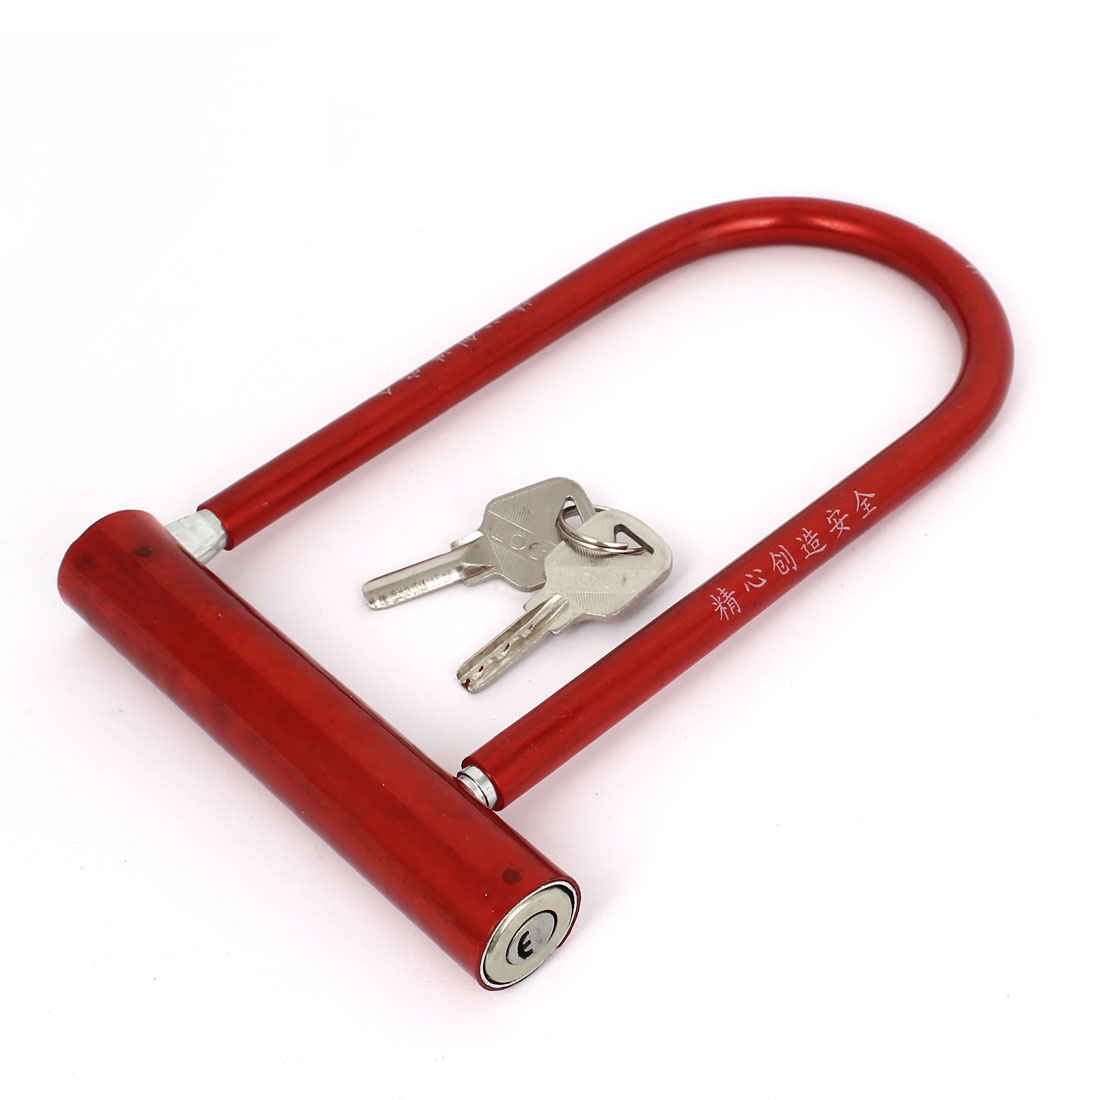 Bicycle Mountain Bike Cycling Steel U Shape Security Cable Lock Red w 2 Keys